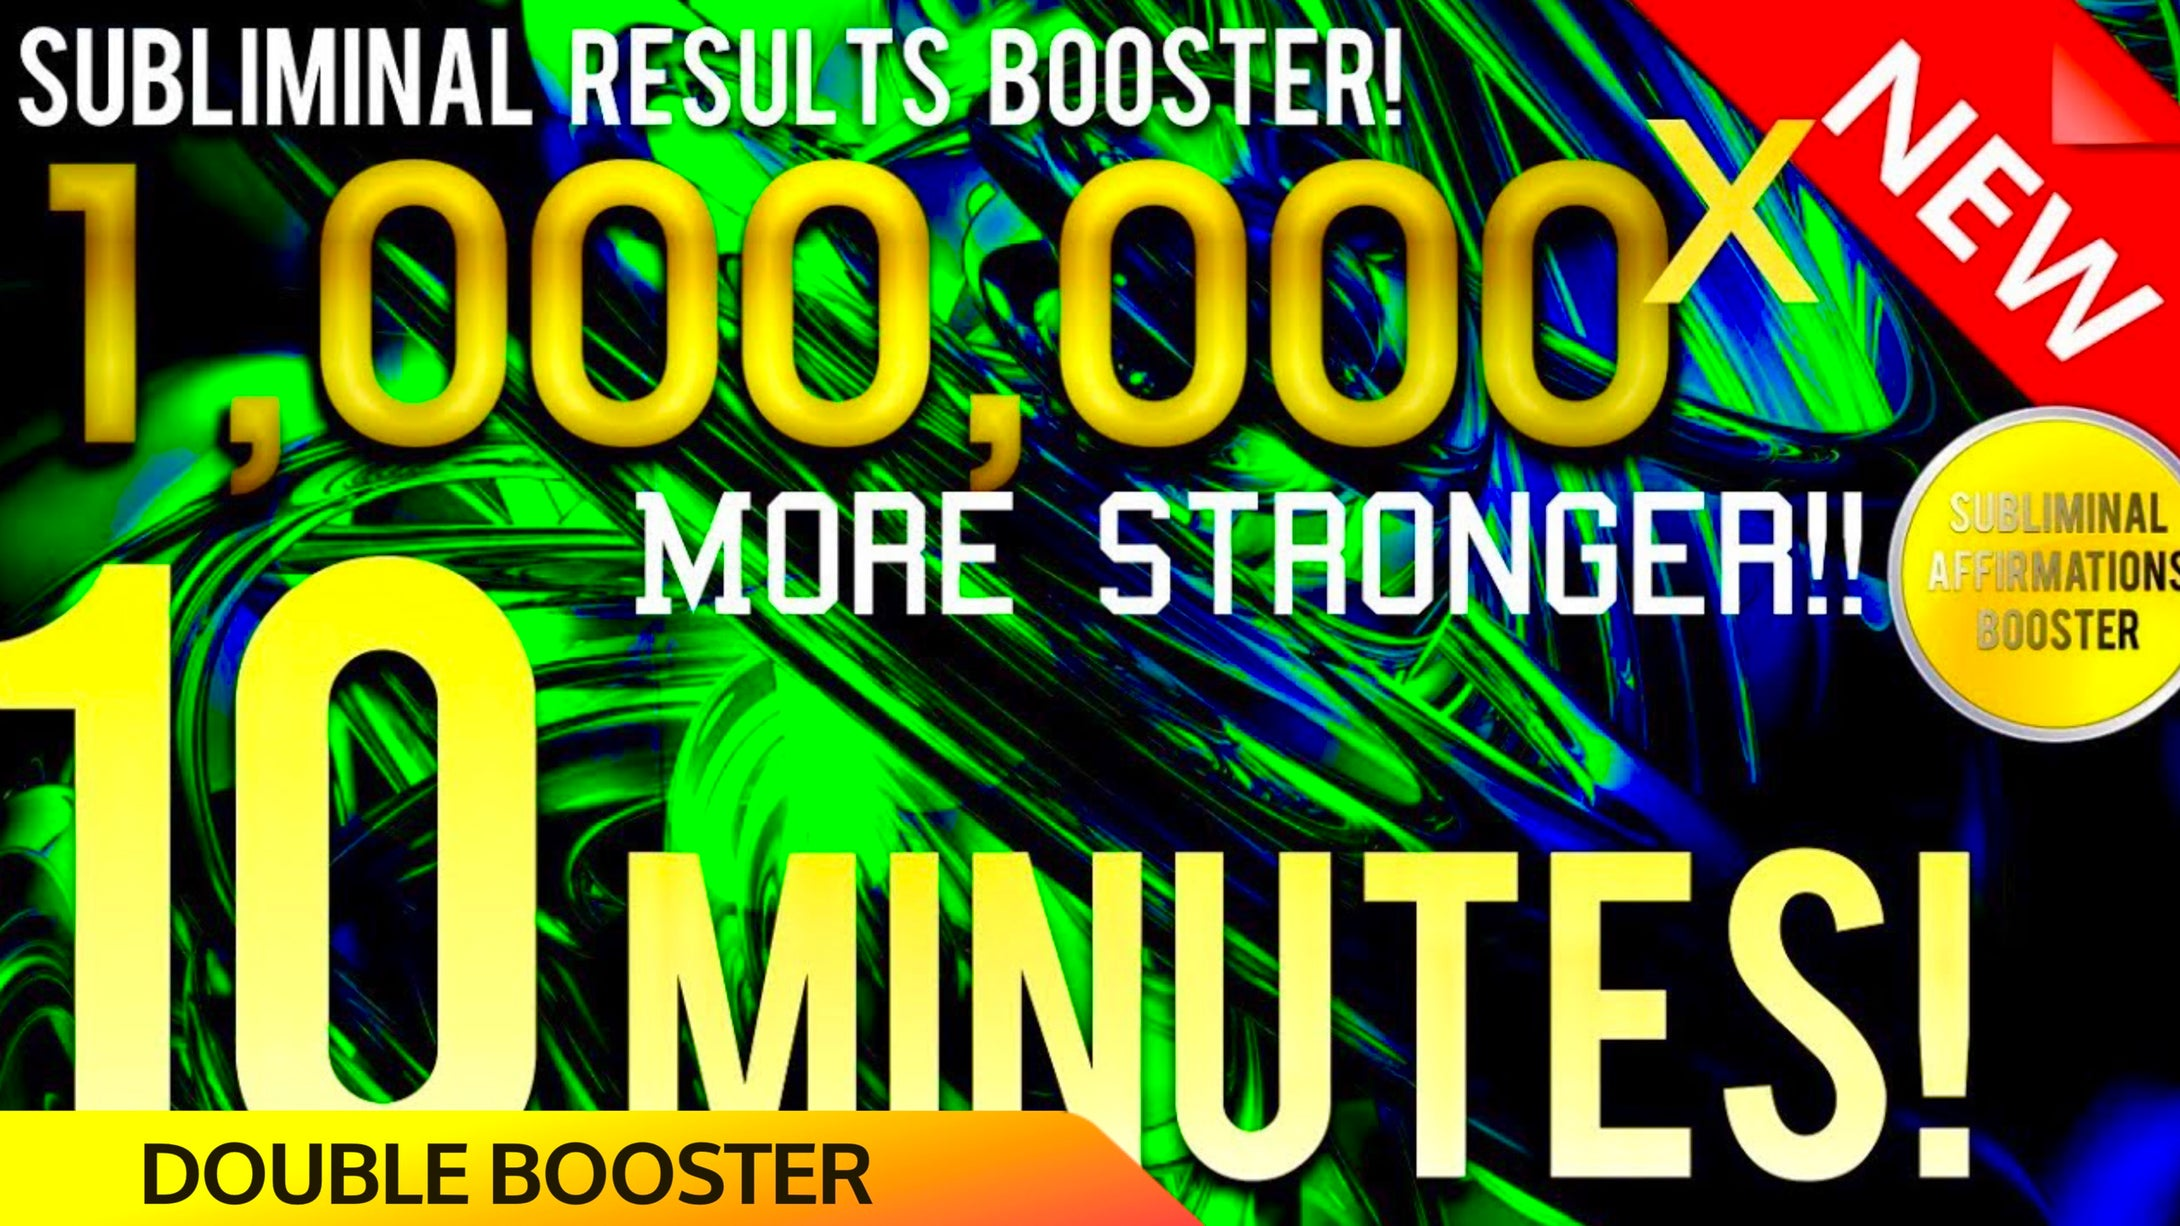 SUBLIMINAL RESULTS BOOSTER! GET RESULTS IN 10 MINUTES! 1,000,000x MORE STRONGER! 😱!